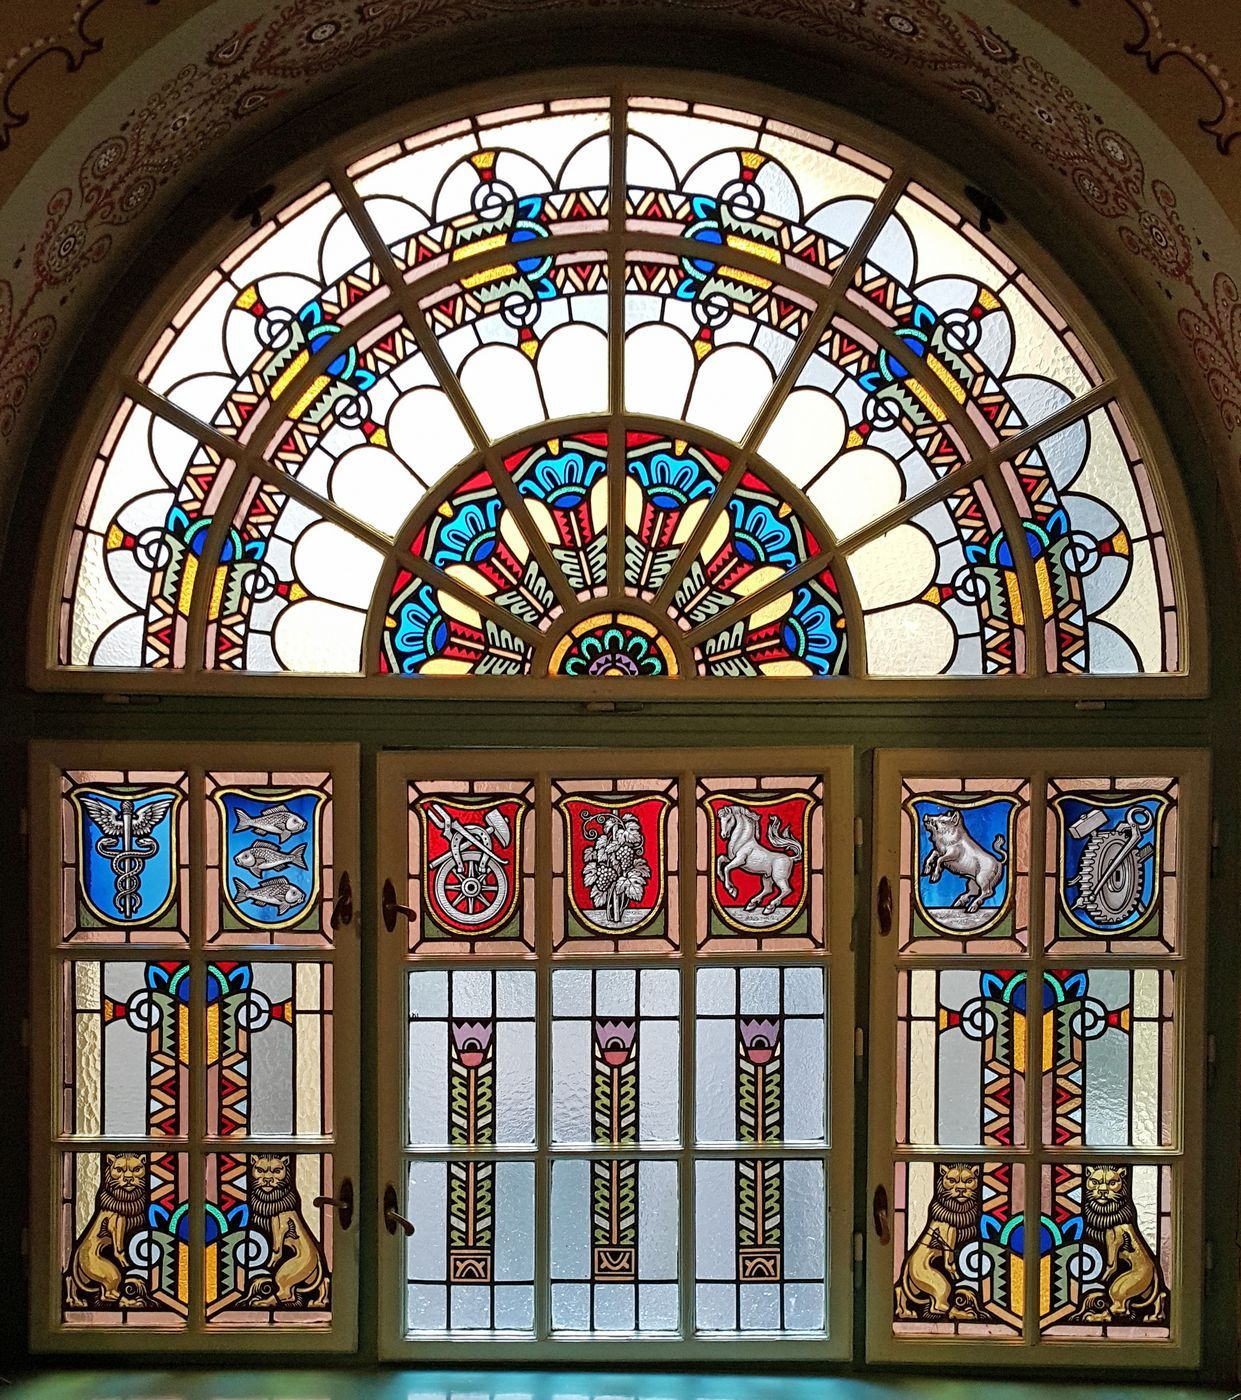 Pin By Tamara K On Secession Subotica Szabadka Belgrade Serbia Sarajevo Bosnia Beautiful Buildings Vojvodina Stained Glass